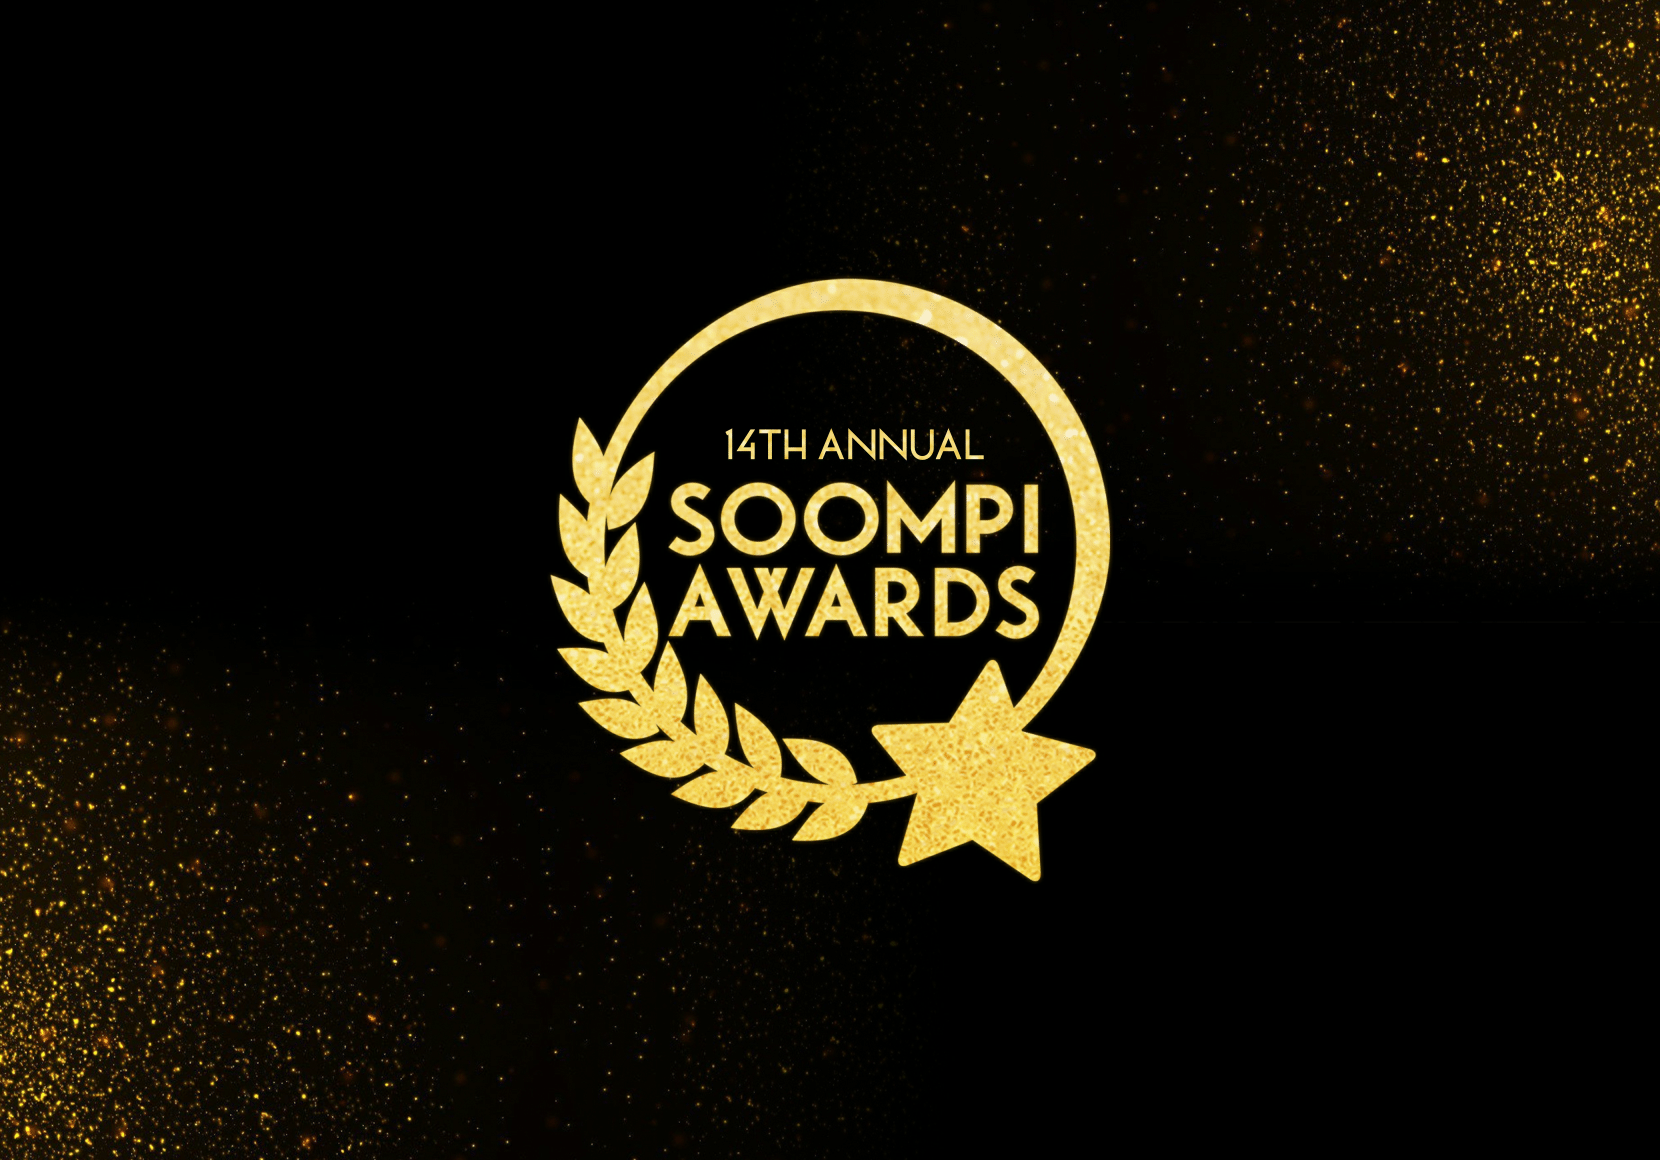 14th Annual Soompi Awards